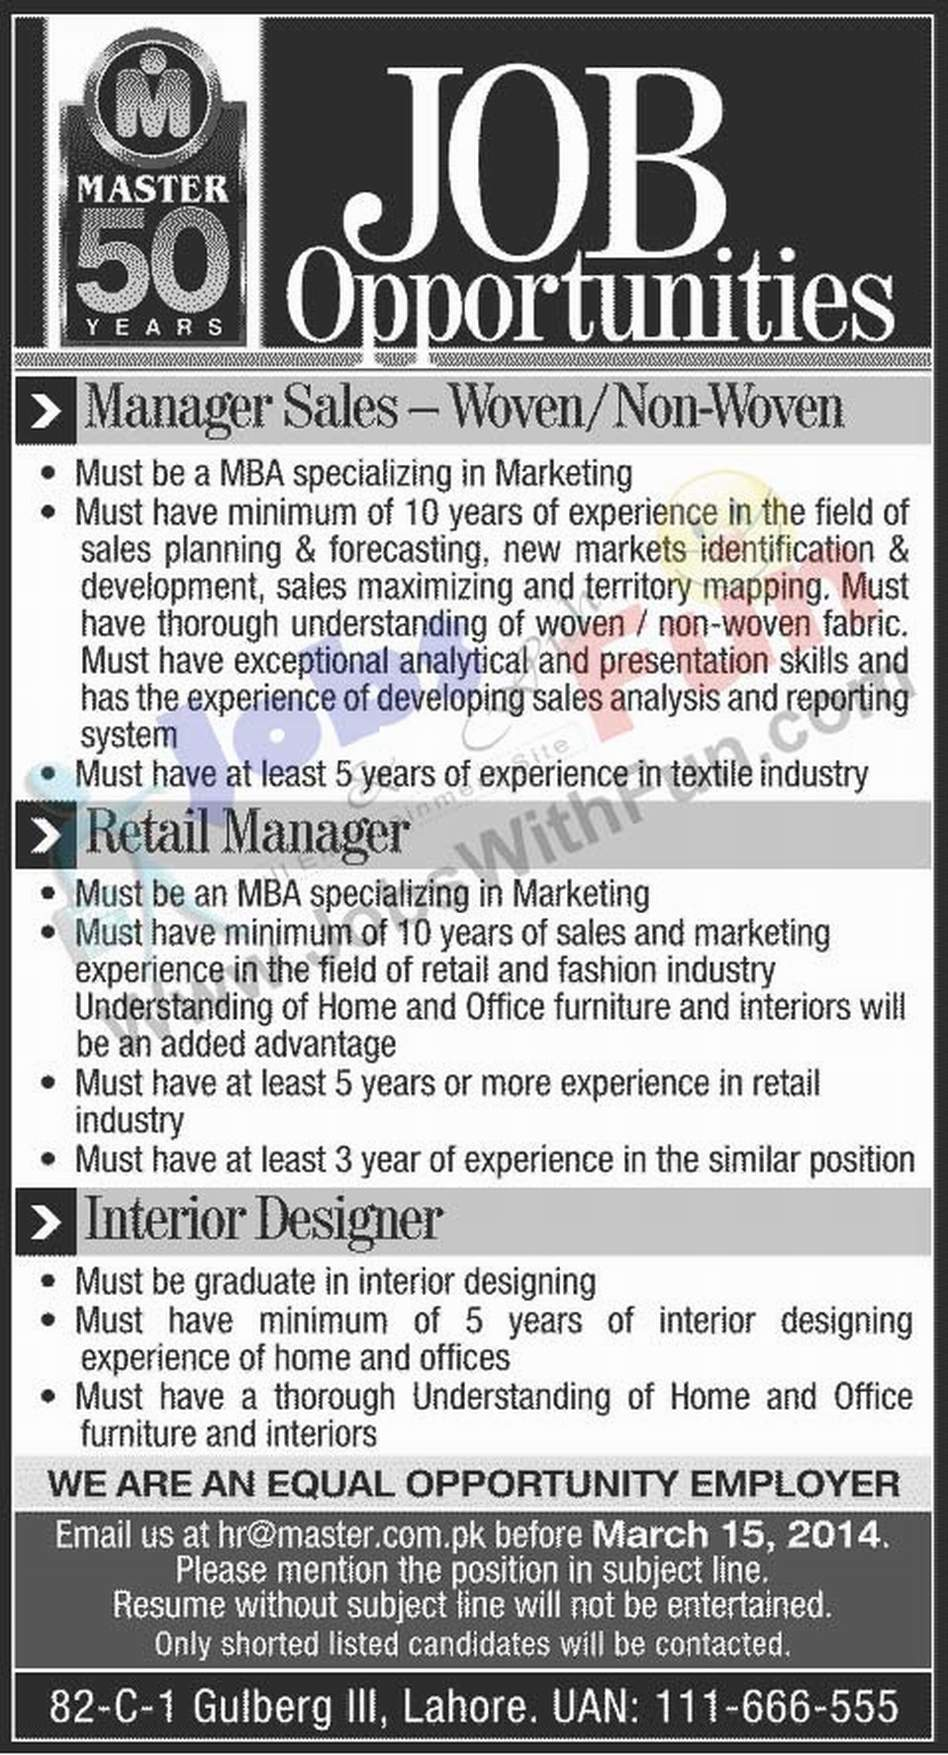 job opportunities in master molty foam lahore jobs jobs fun com